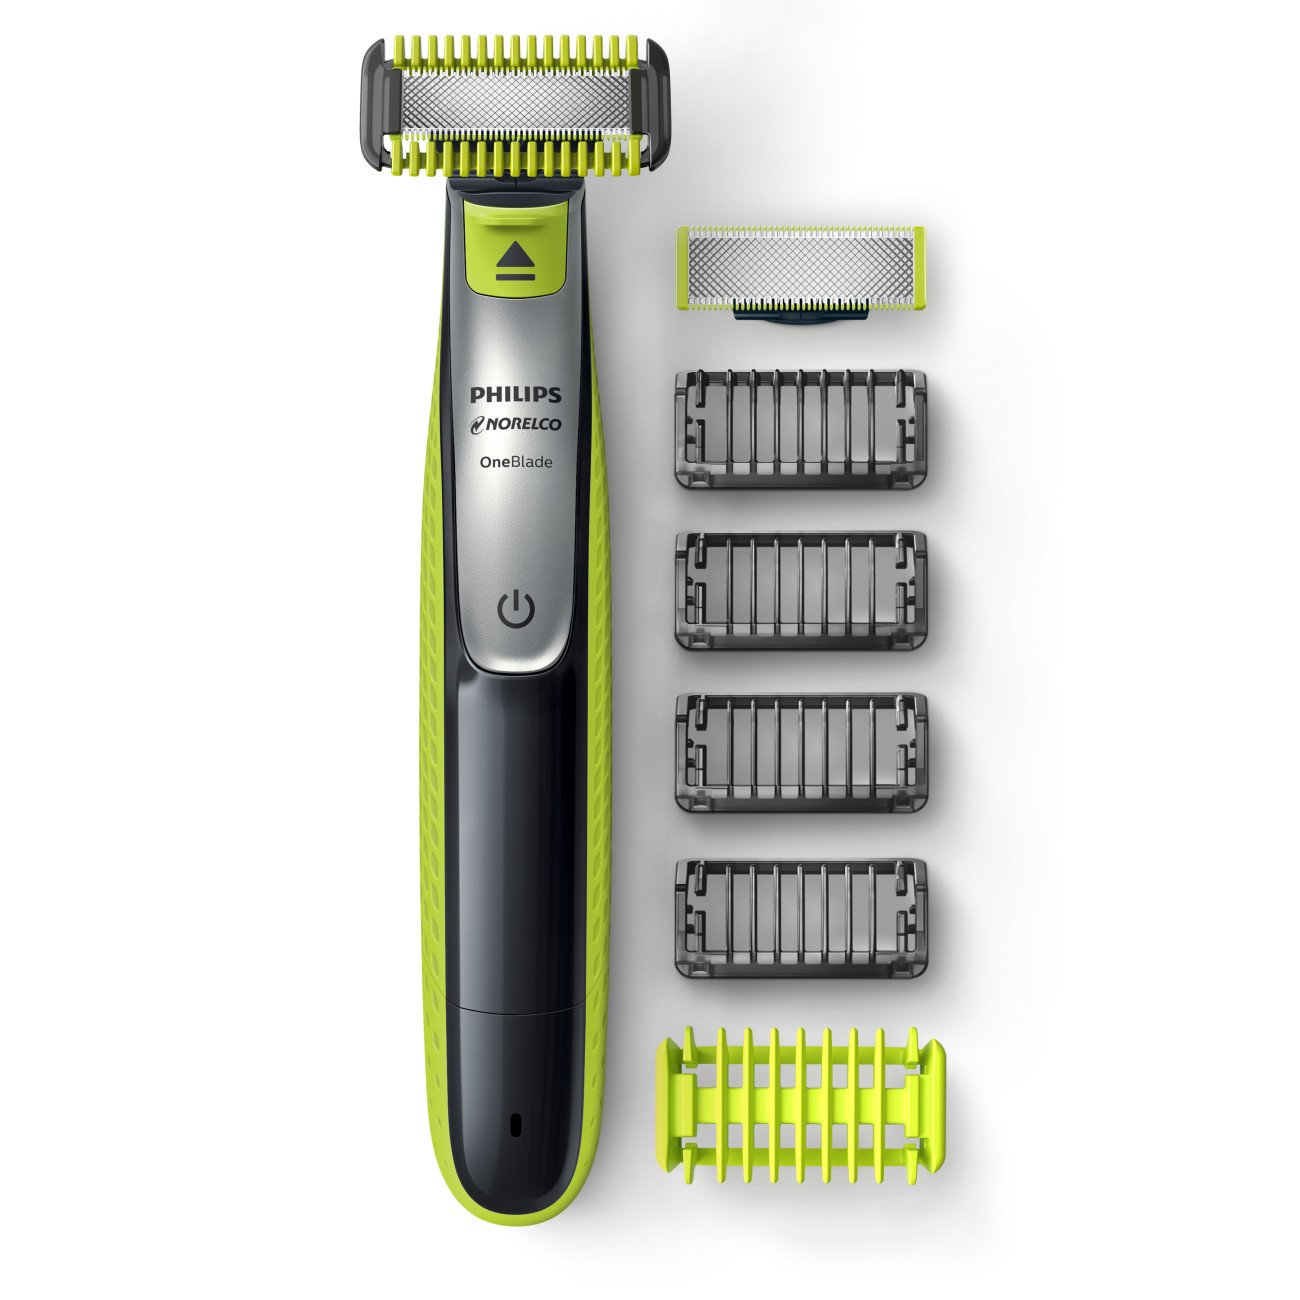 Philips Norelco OneBlade Face+Body- Hybrid Electric Trimmer and Shaver